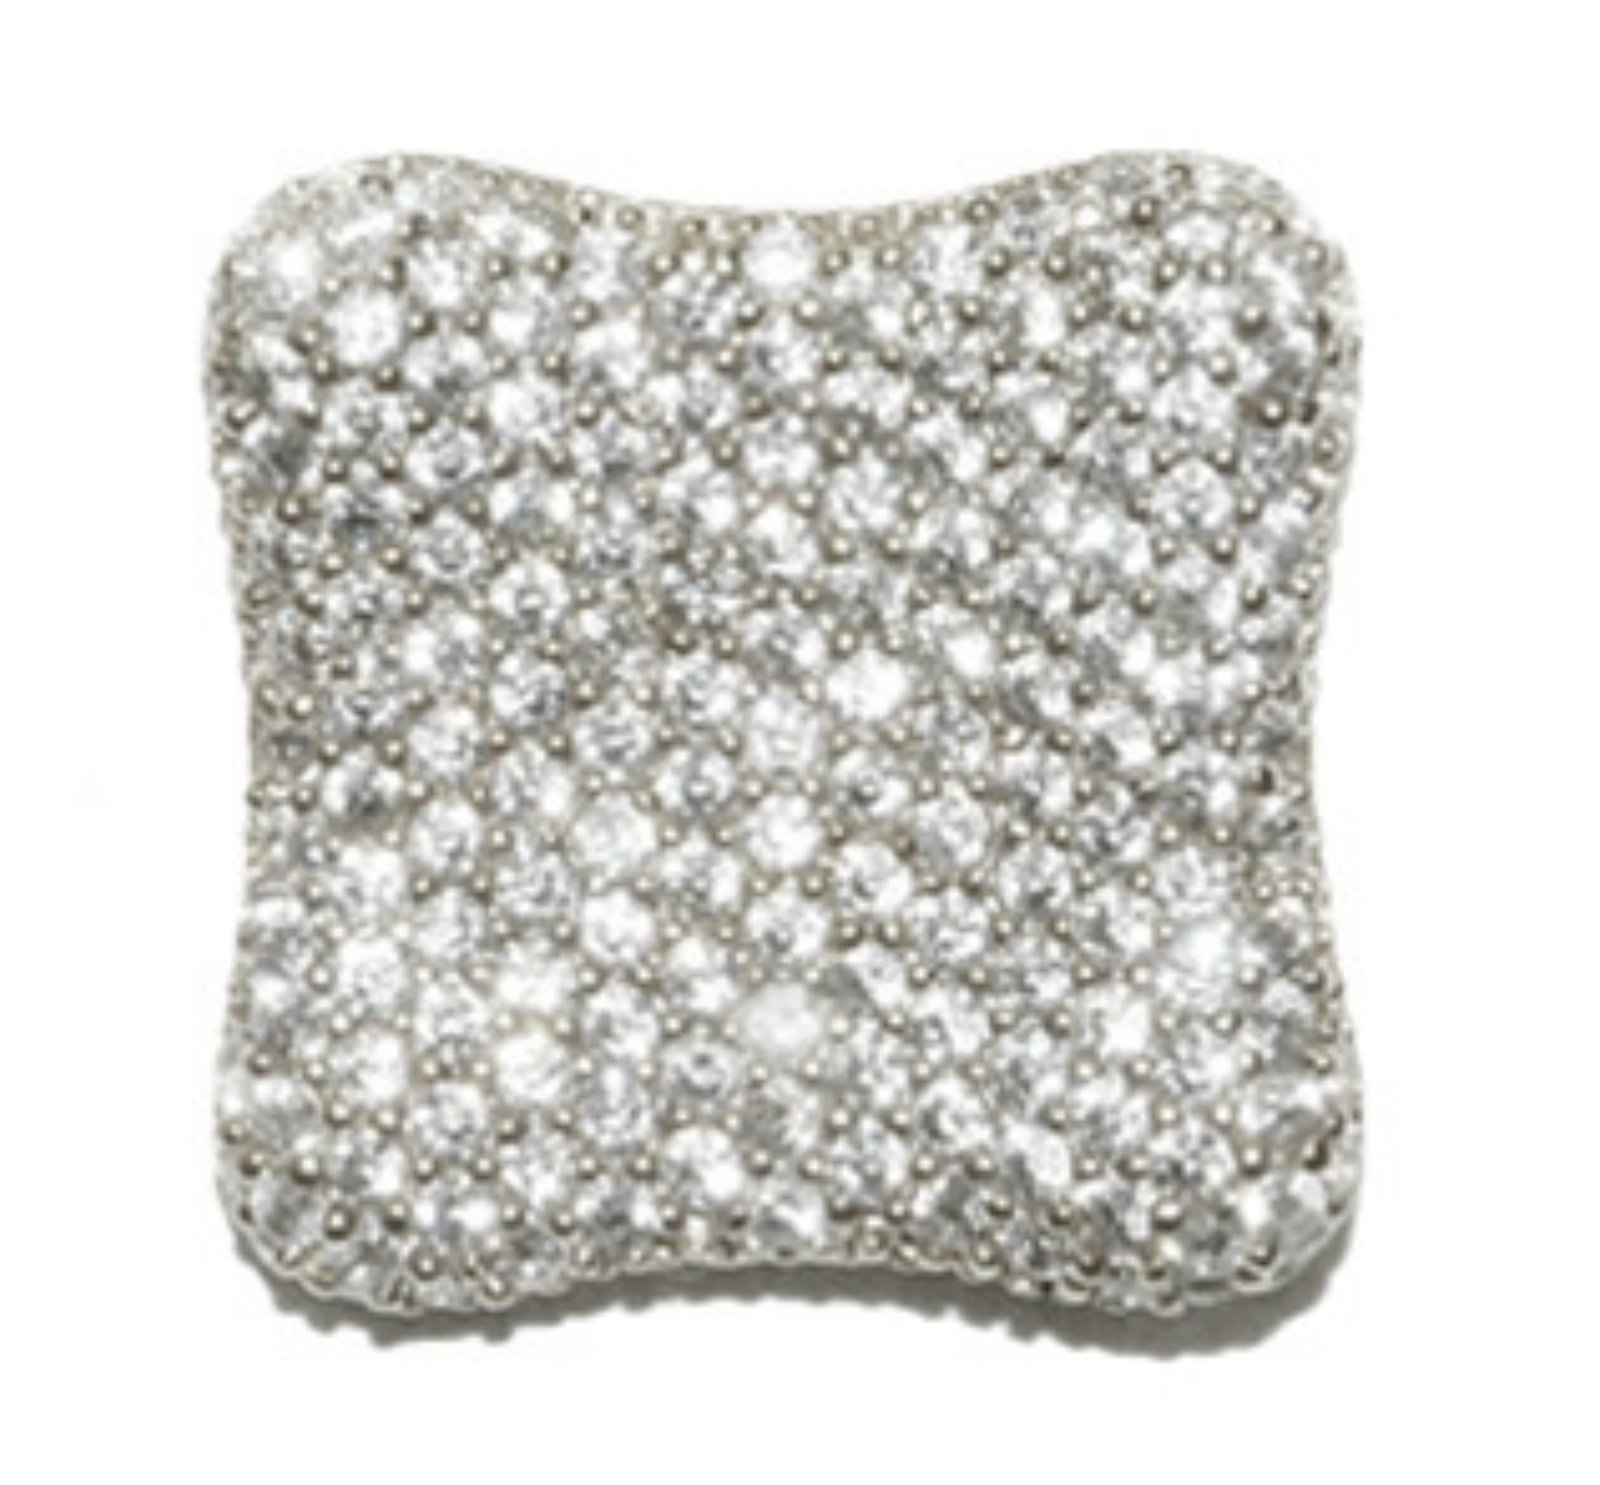 Deneen Pave Cluster Square CZ Stud Earrings | Cubic Zirconia | Silver